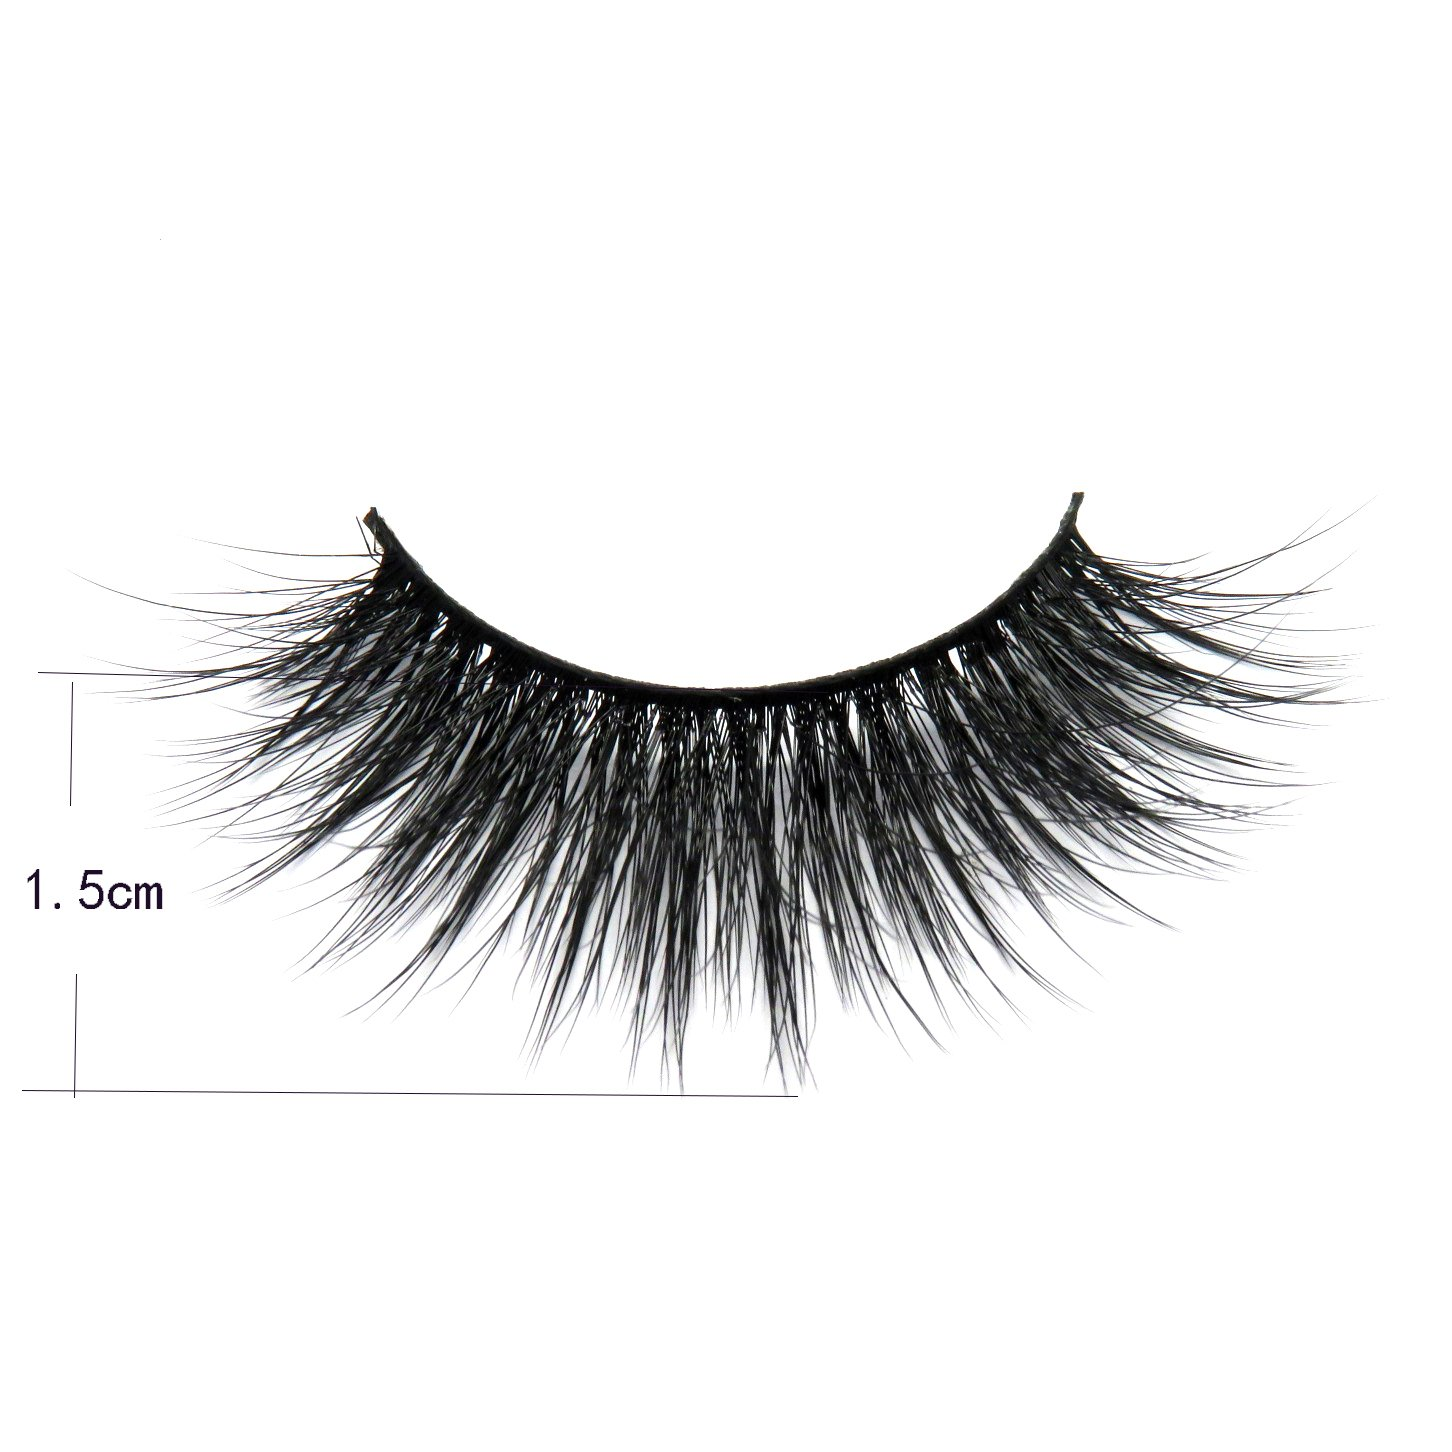 8fb6fde0c22 Amazon.com : Luxury 3D Synthetic Faux Mink Lashes Volume Silk Angel Wing  Natural Long Thick False Eyelashes for Makeup Softer than Real Mink fur  Lashes : ...